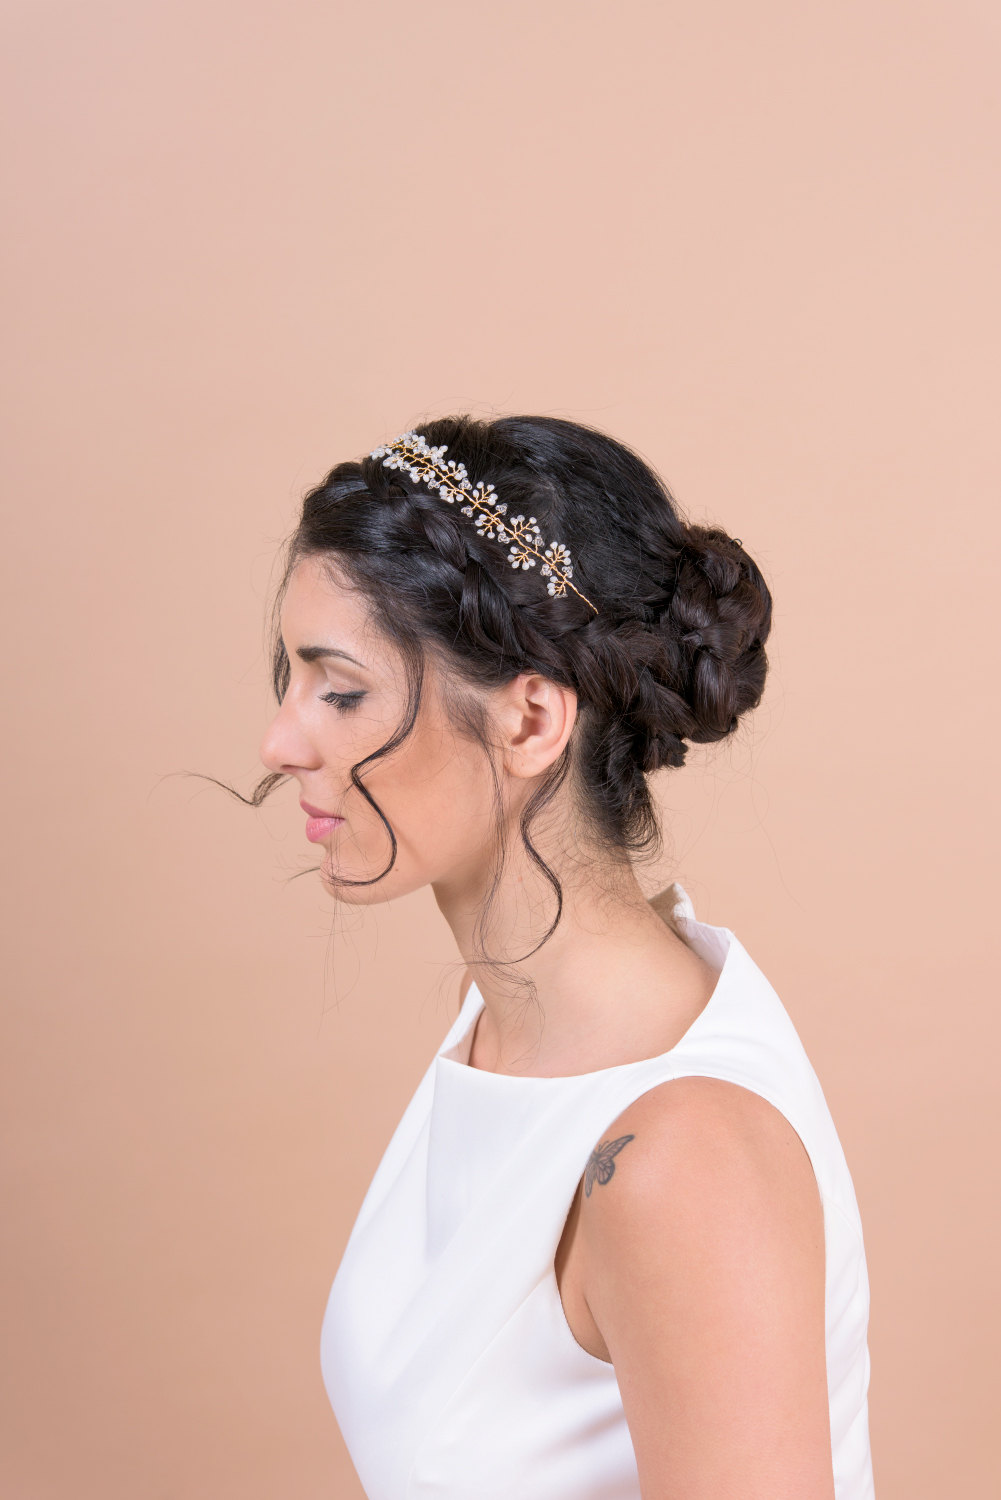 hair vine headband by Bridal Ambiance | bridal veil alternative via https://emmalinebride.com/bride/bridal-veil-alternatives/ ‎ | any hairstyle